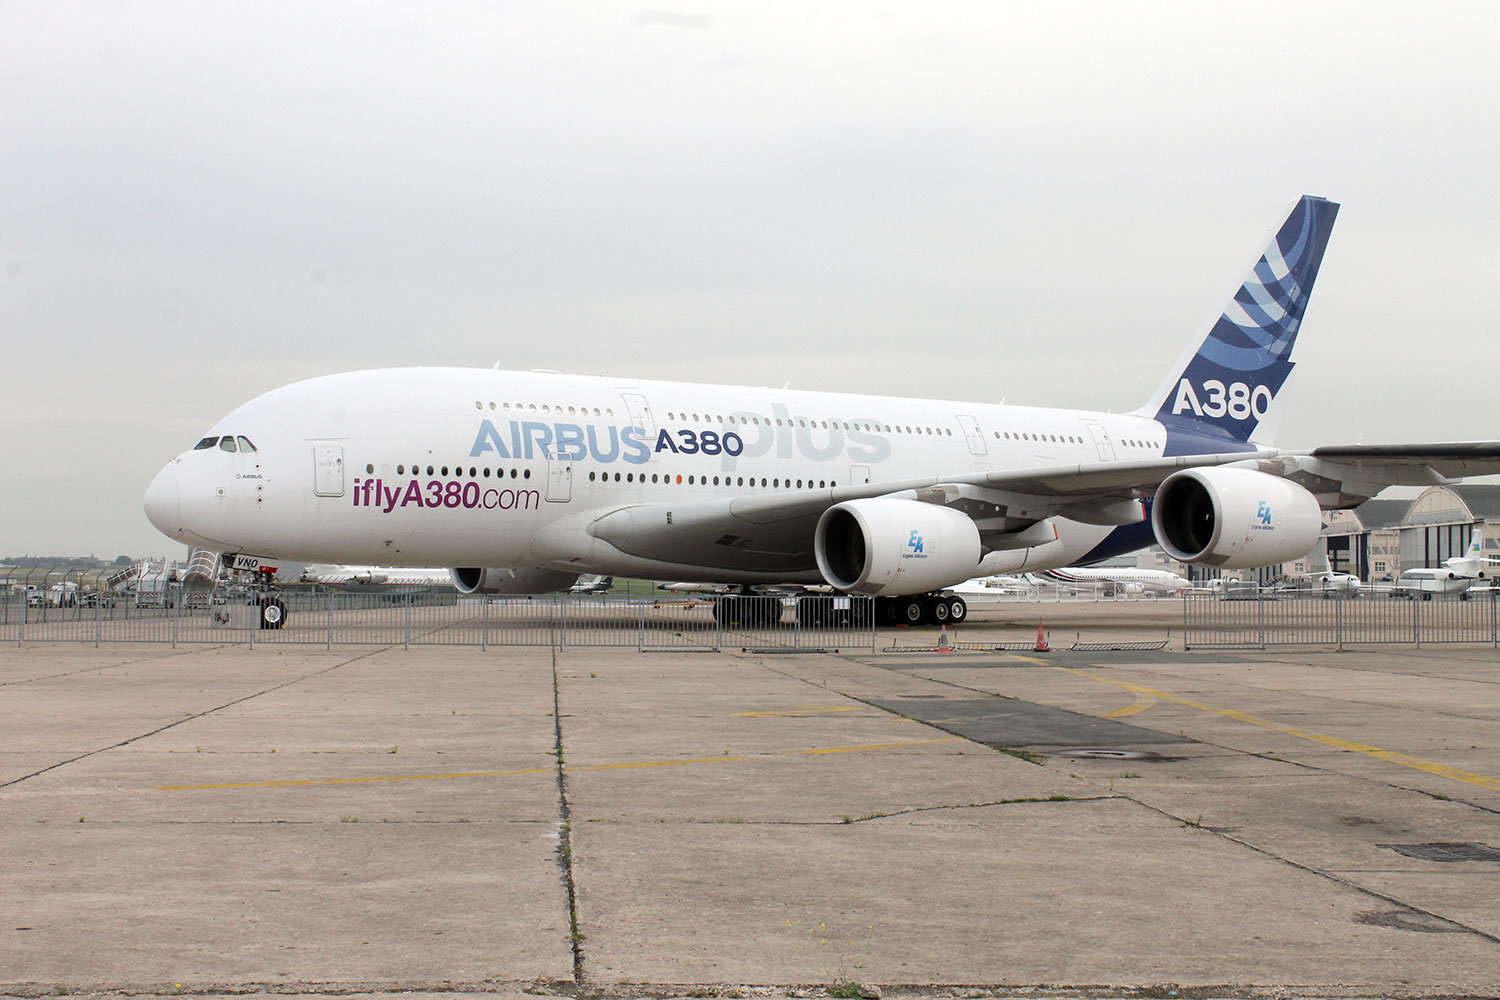 Le Bourget Airbus A380